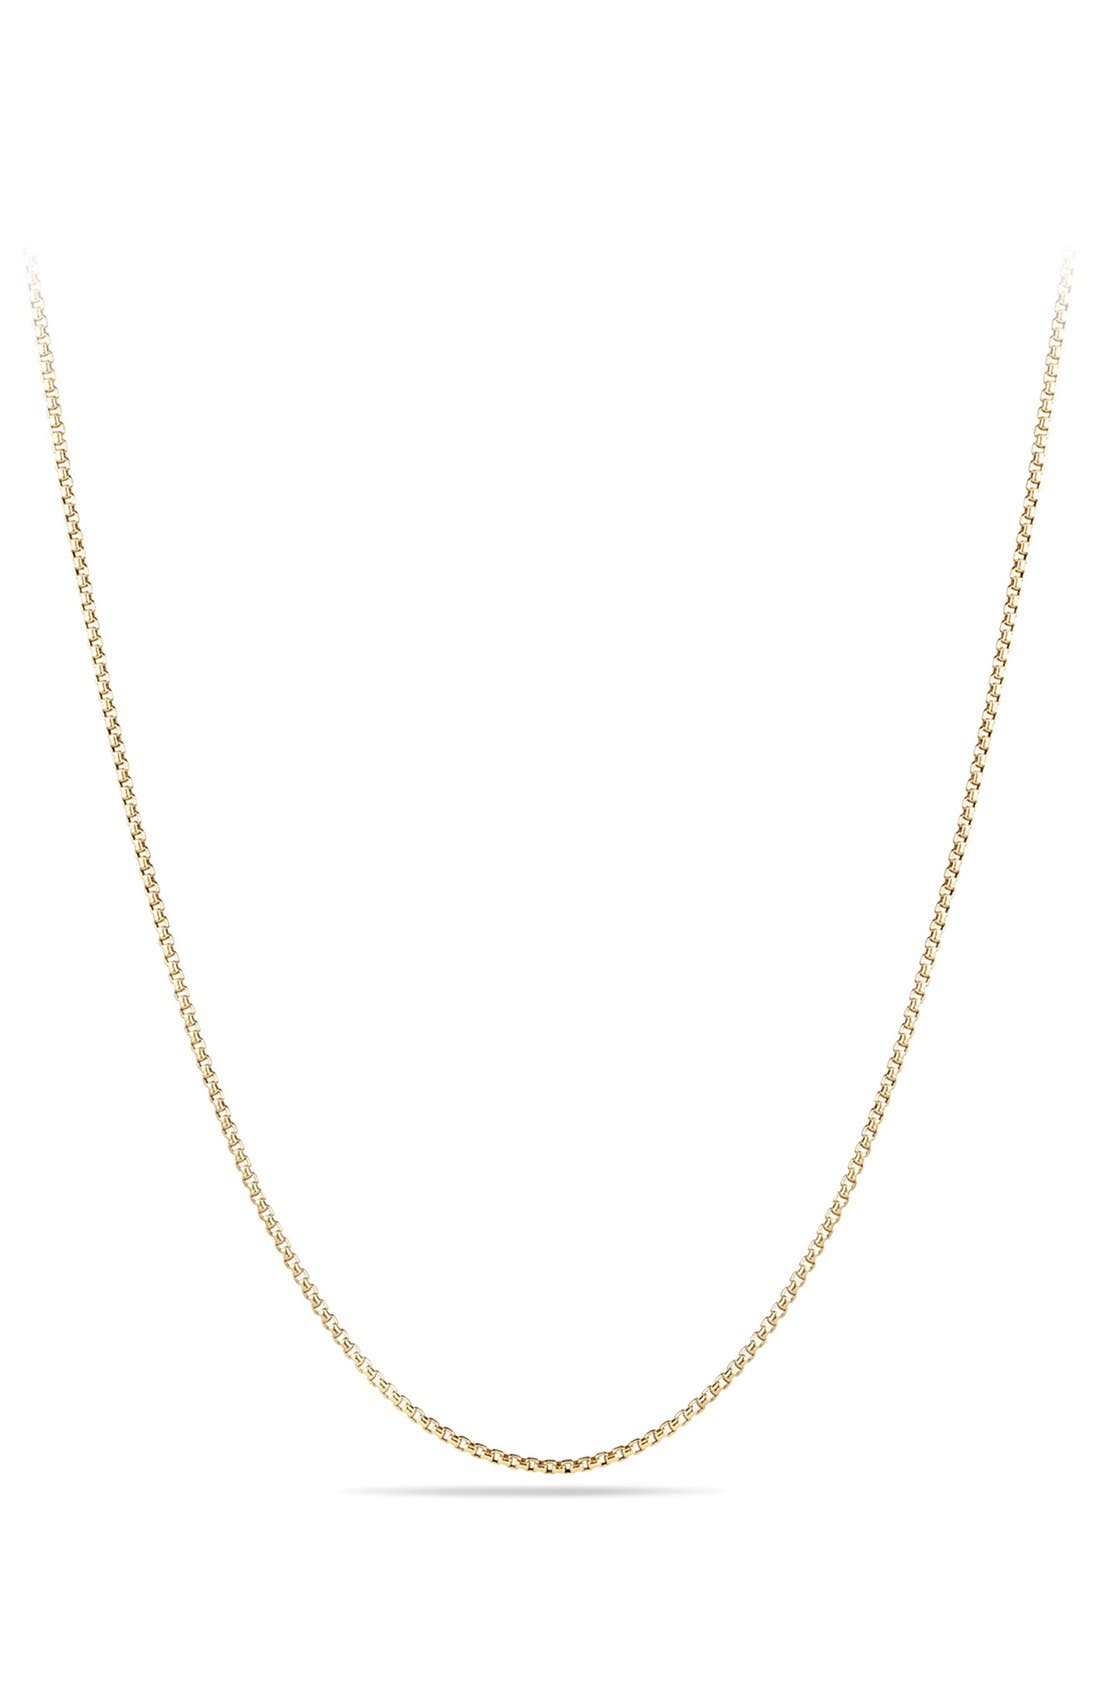 Box Chain Necklace in 18K Gold,                             Main thumbnail 1, color,                             YELLOW GOLD